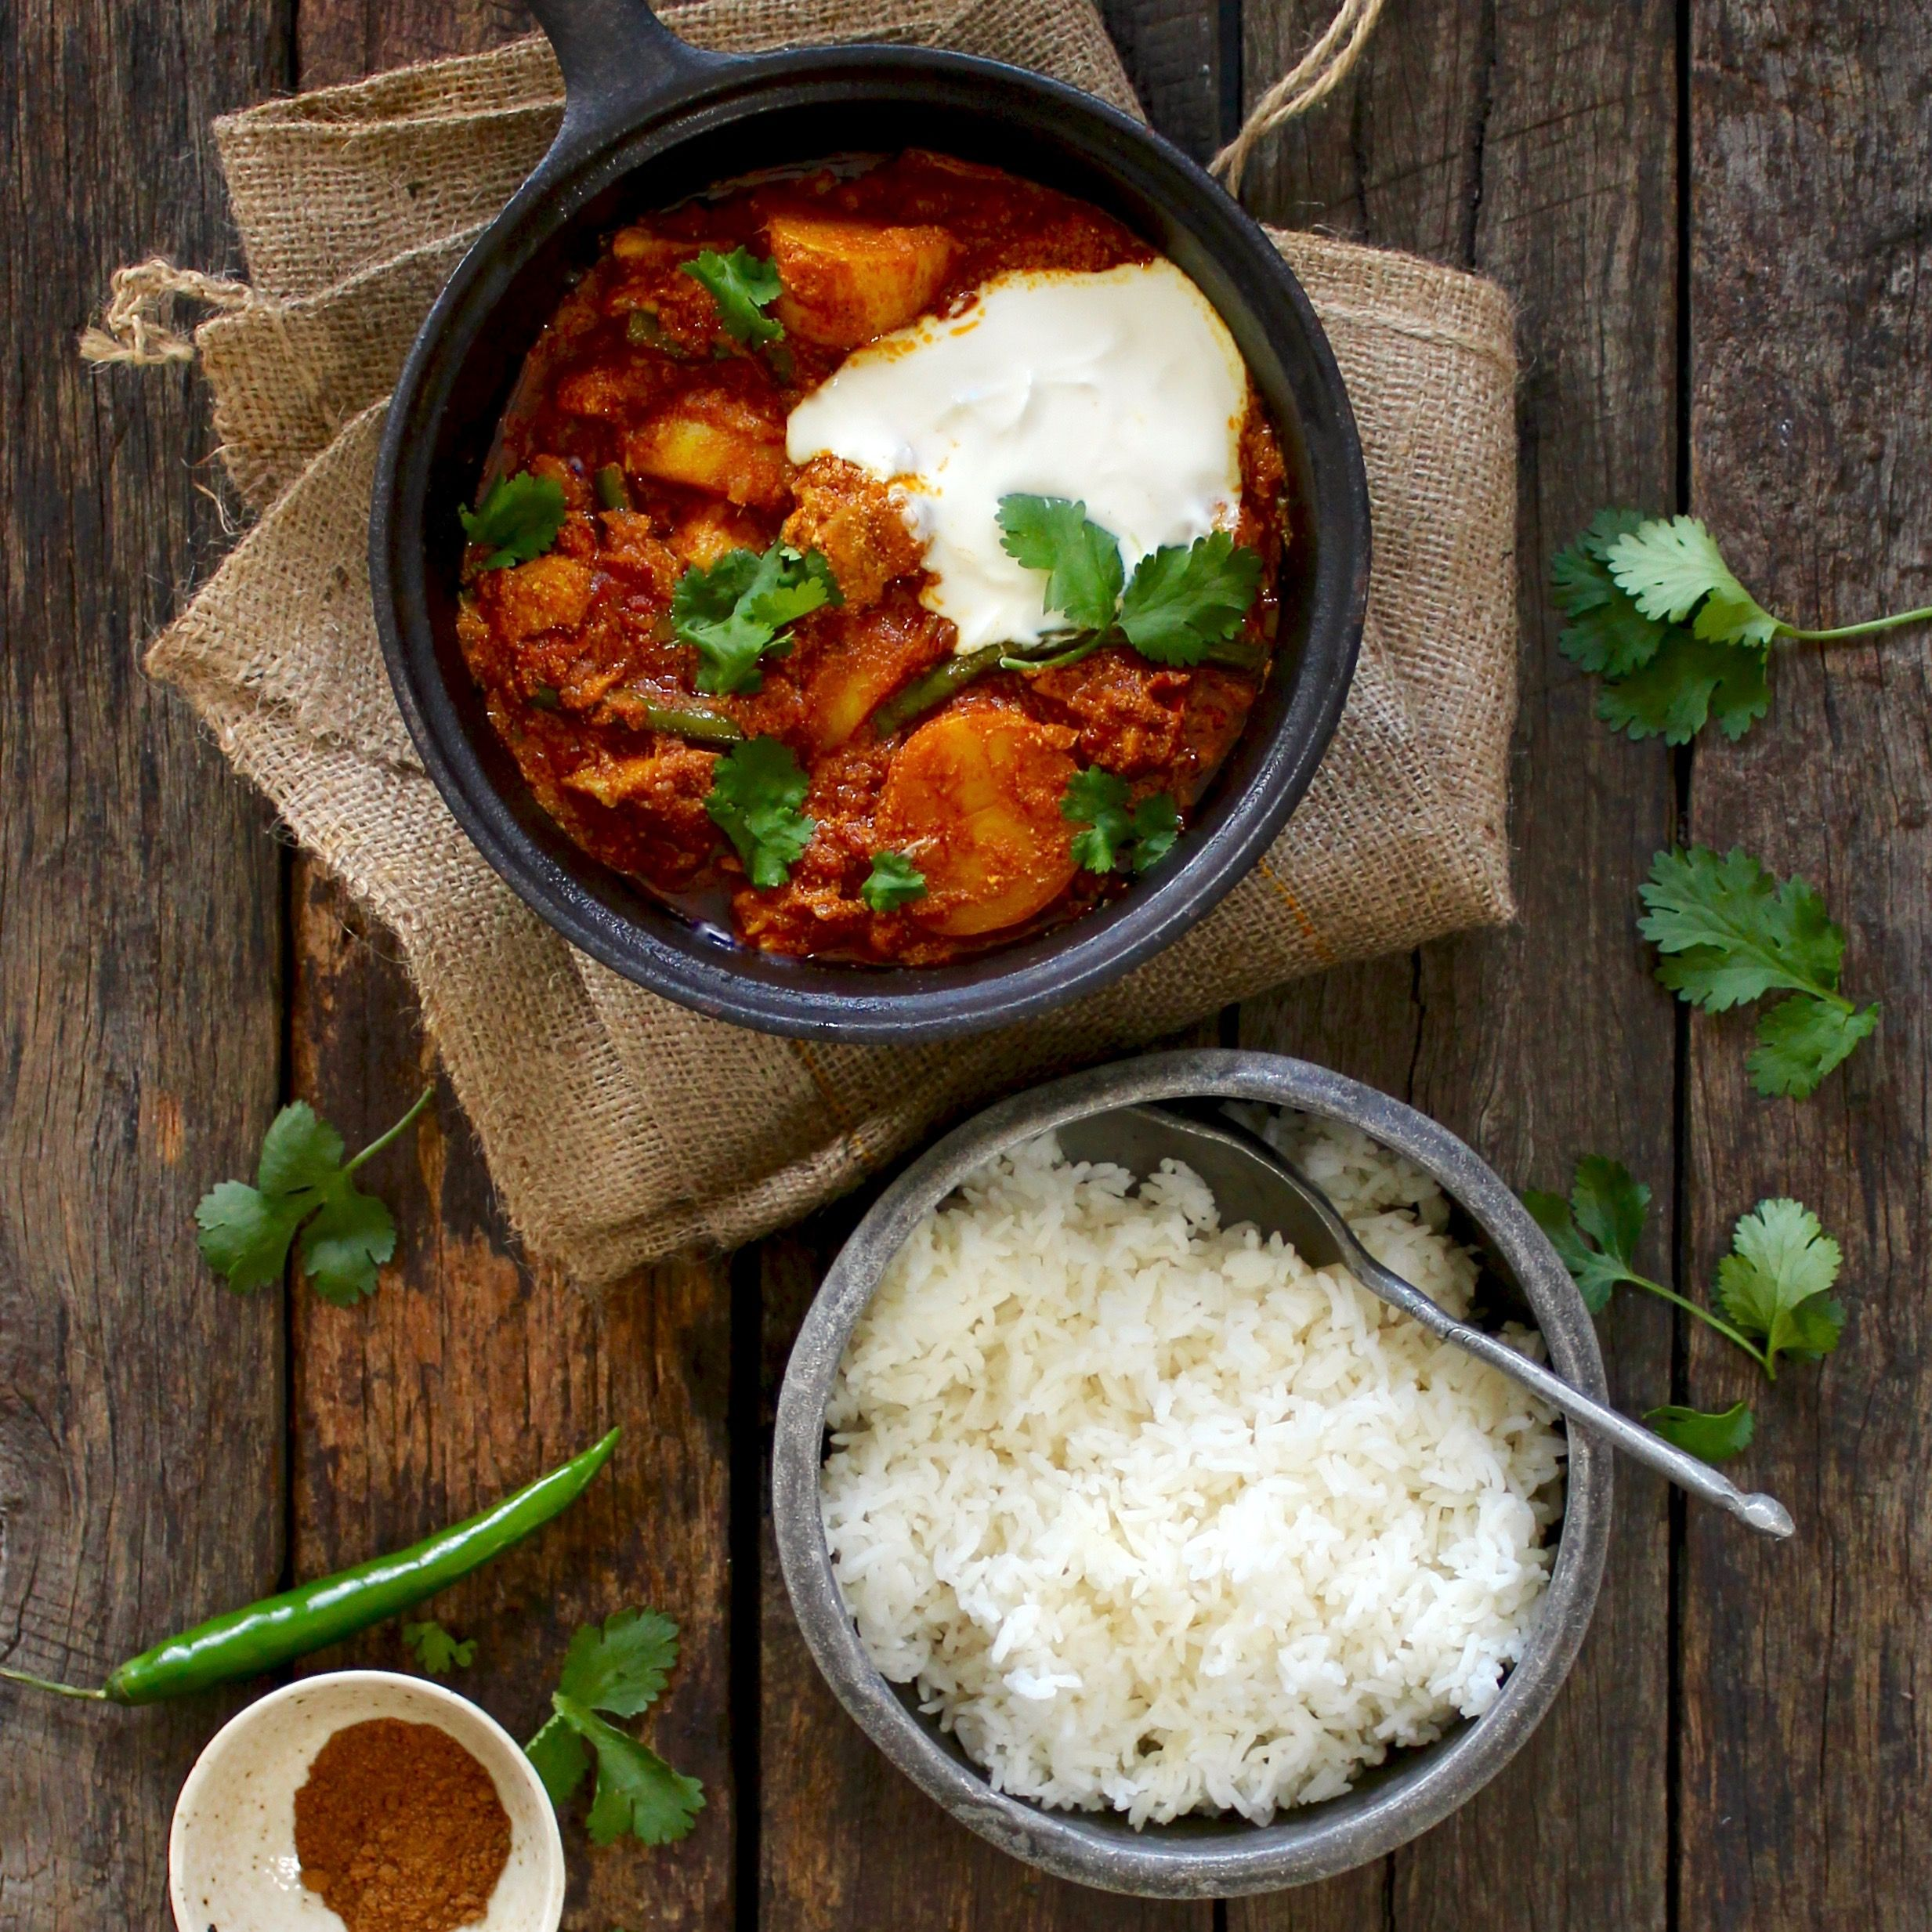 PANEER & VEGETABLE CURRY BY CARLA MCMILLAN. Paneer is a fresh, unsalted white cheese commonly used in Indian cooking. Carla's version of this classic Indian dish combines cubes of fried paneer with a richly spiced tomato and spinach gravy. 30 Minutes. Vegetarian. Gluten Free. Sugar Free.